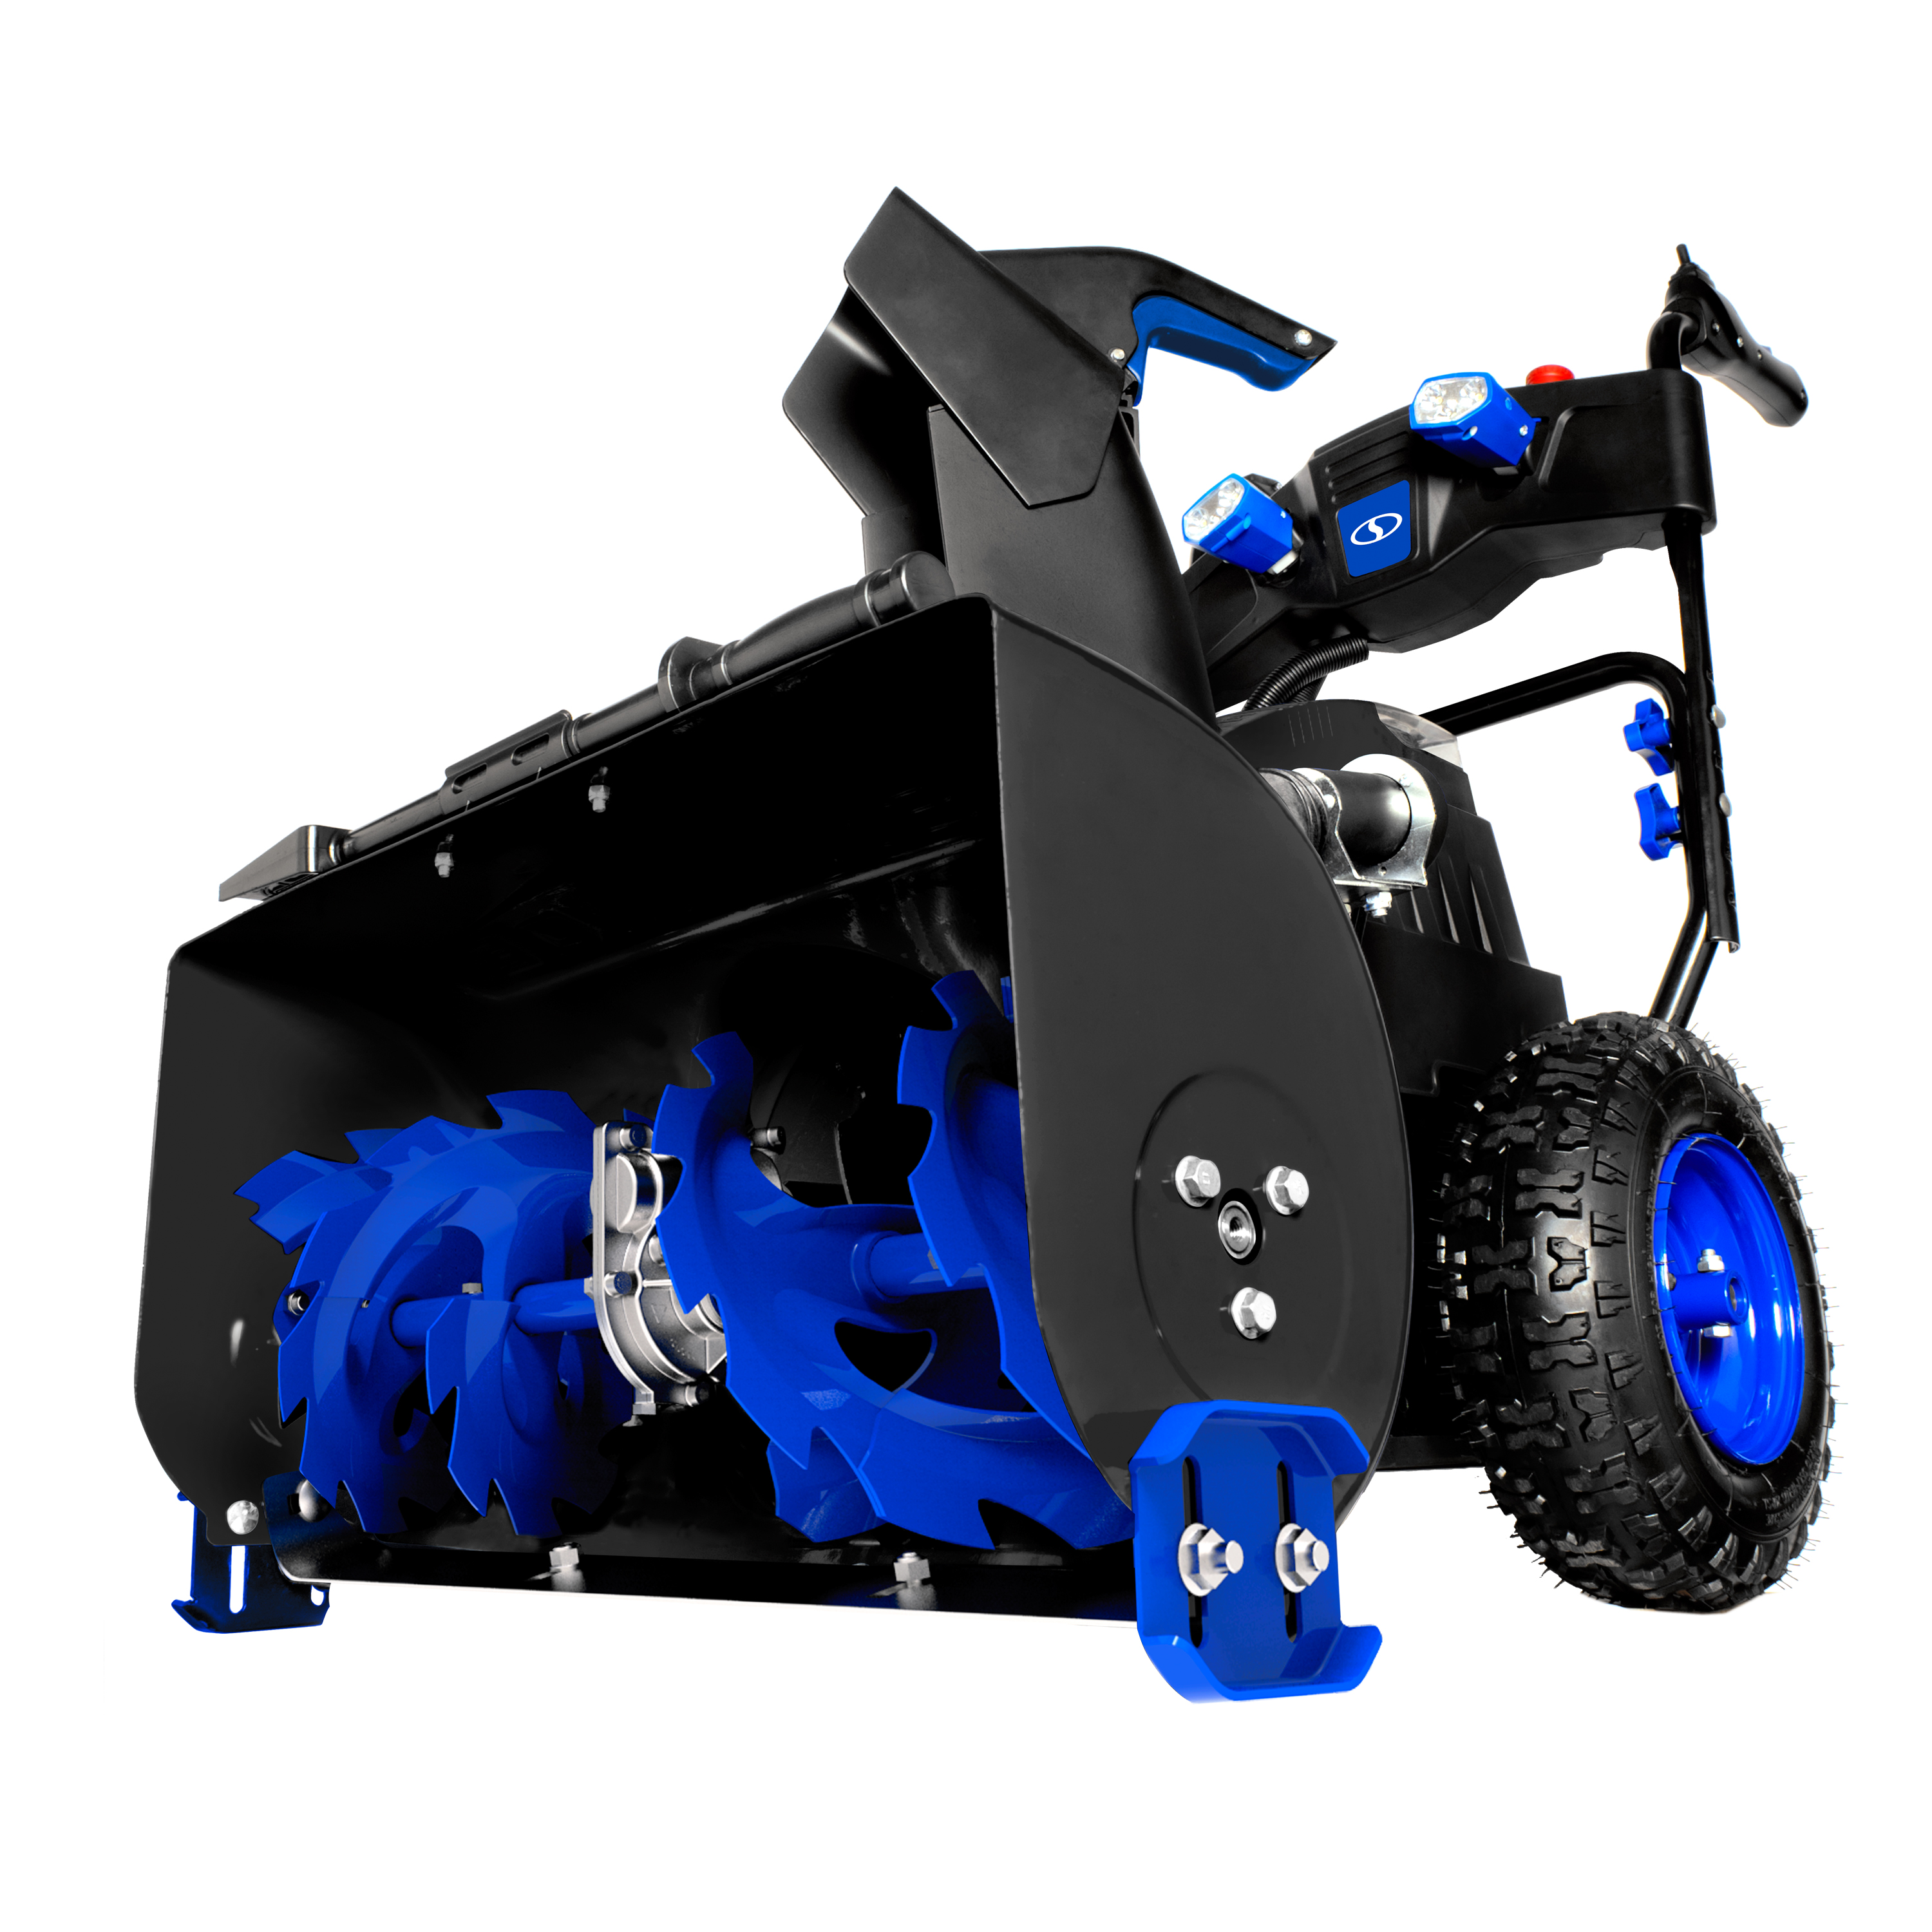 Snow Joe ION8024-XR Cordless Two Stage Snow Blower | 24-Inch · 80 Volt · 2 x 5 Ah Batteries | 4-Speed · Headlights